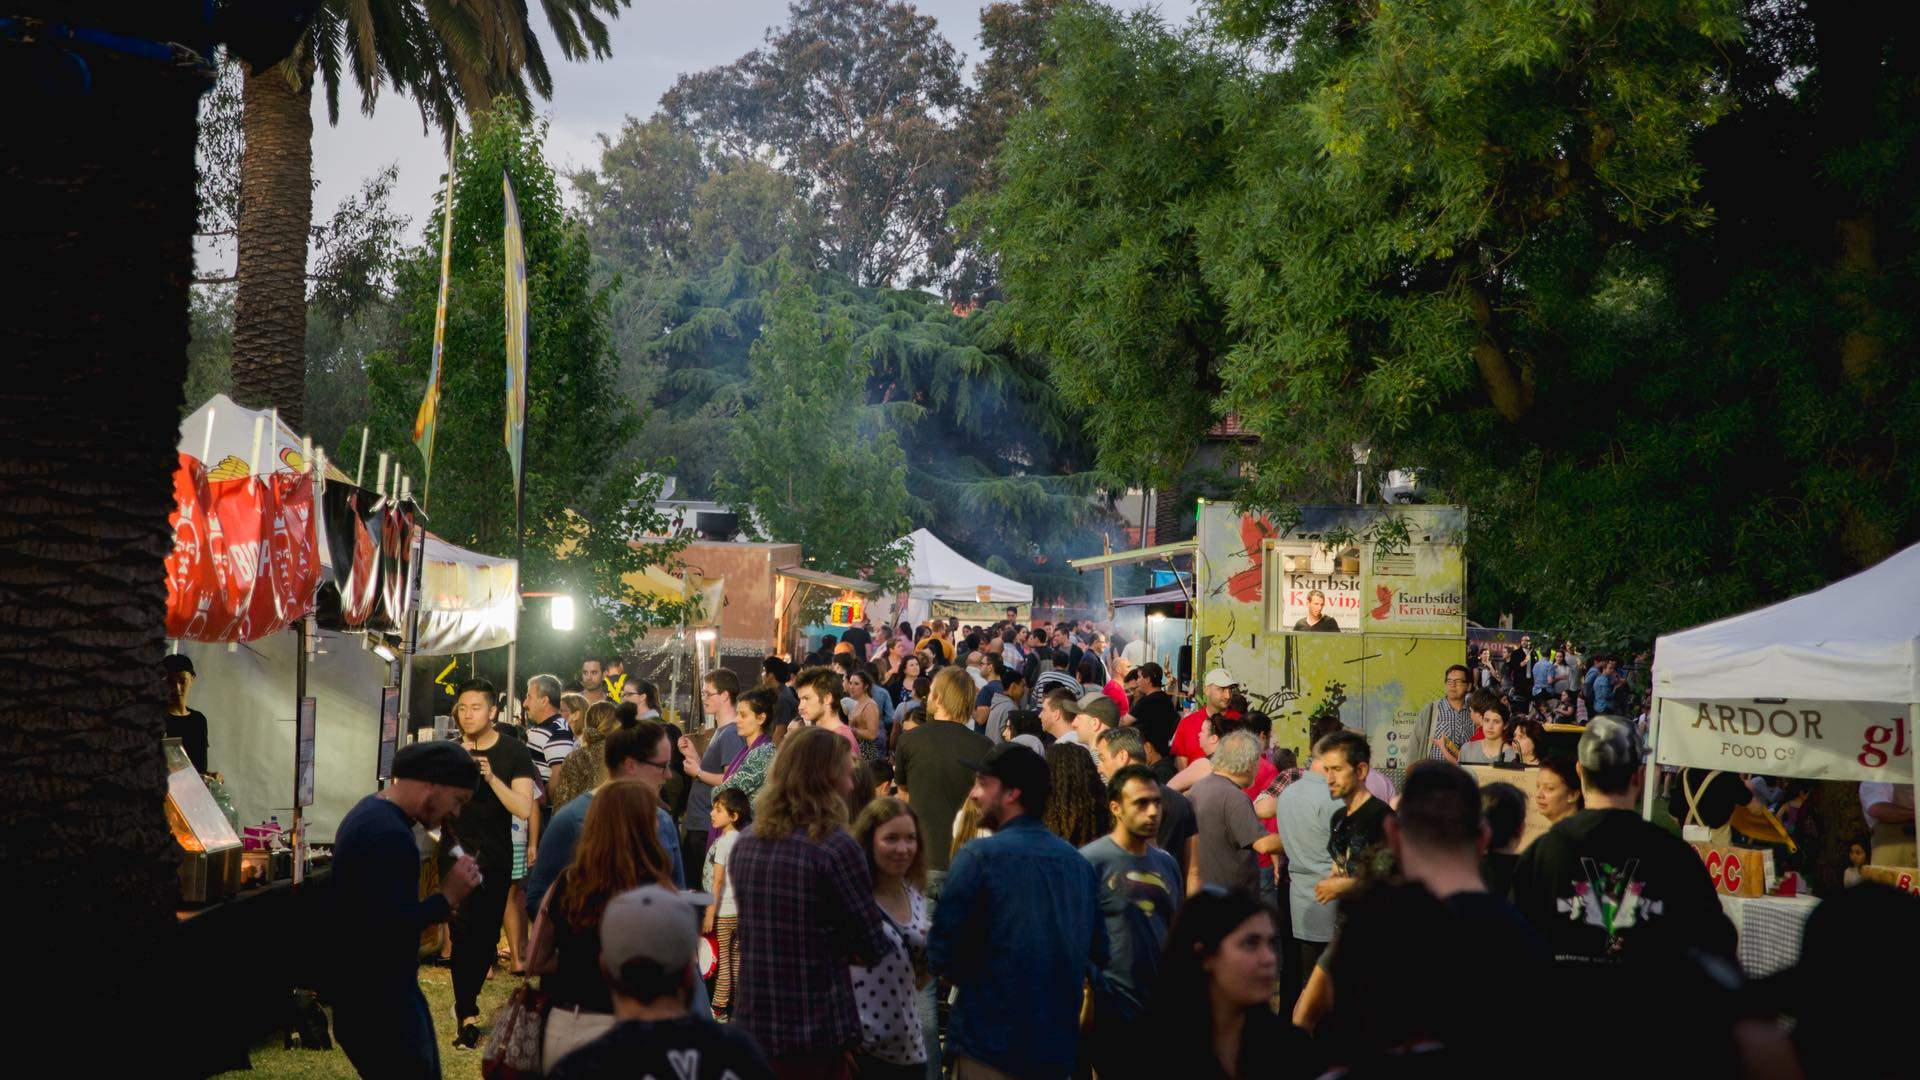 Coburg Night Market 2019